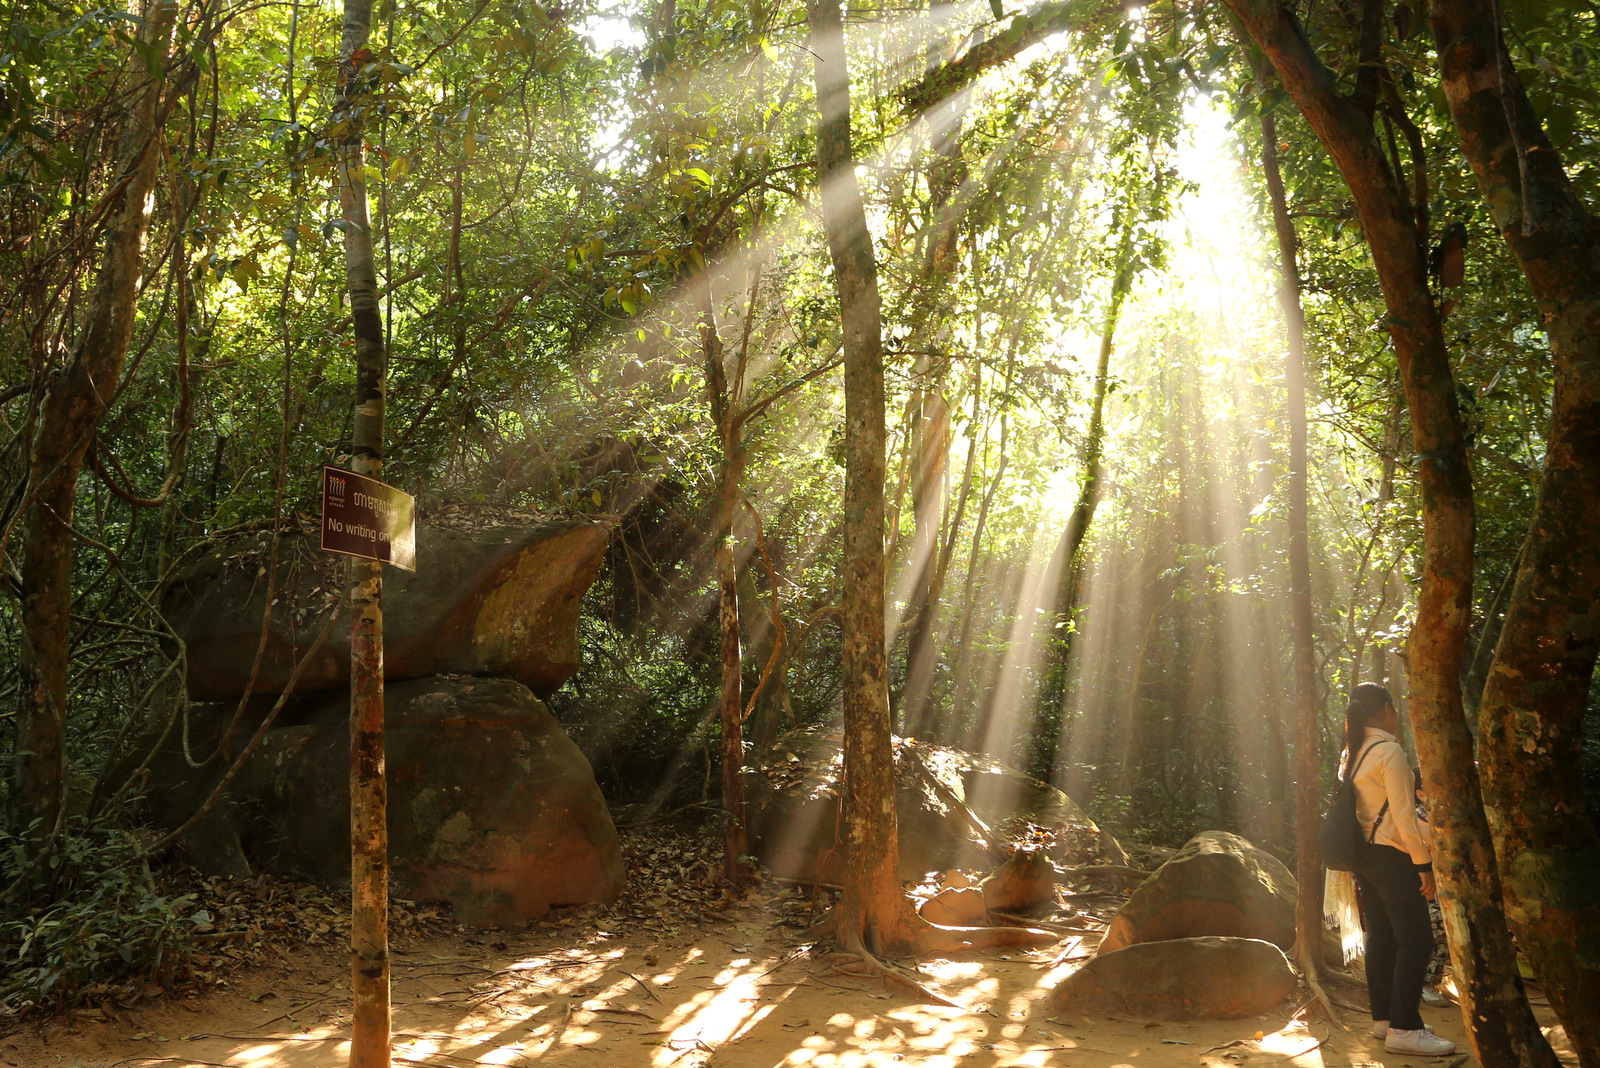 Wonderful morning light in the jungle on the way to Kbal Spean